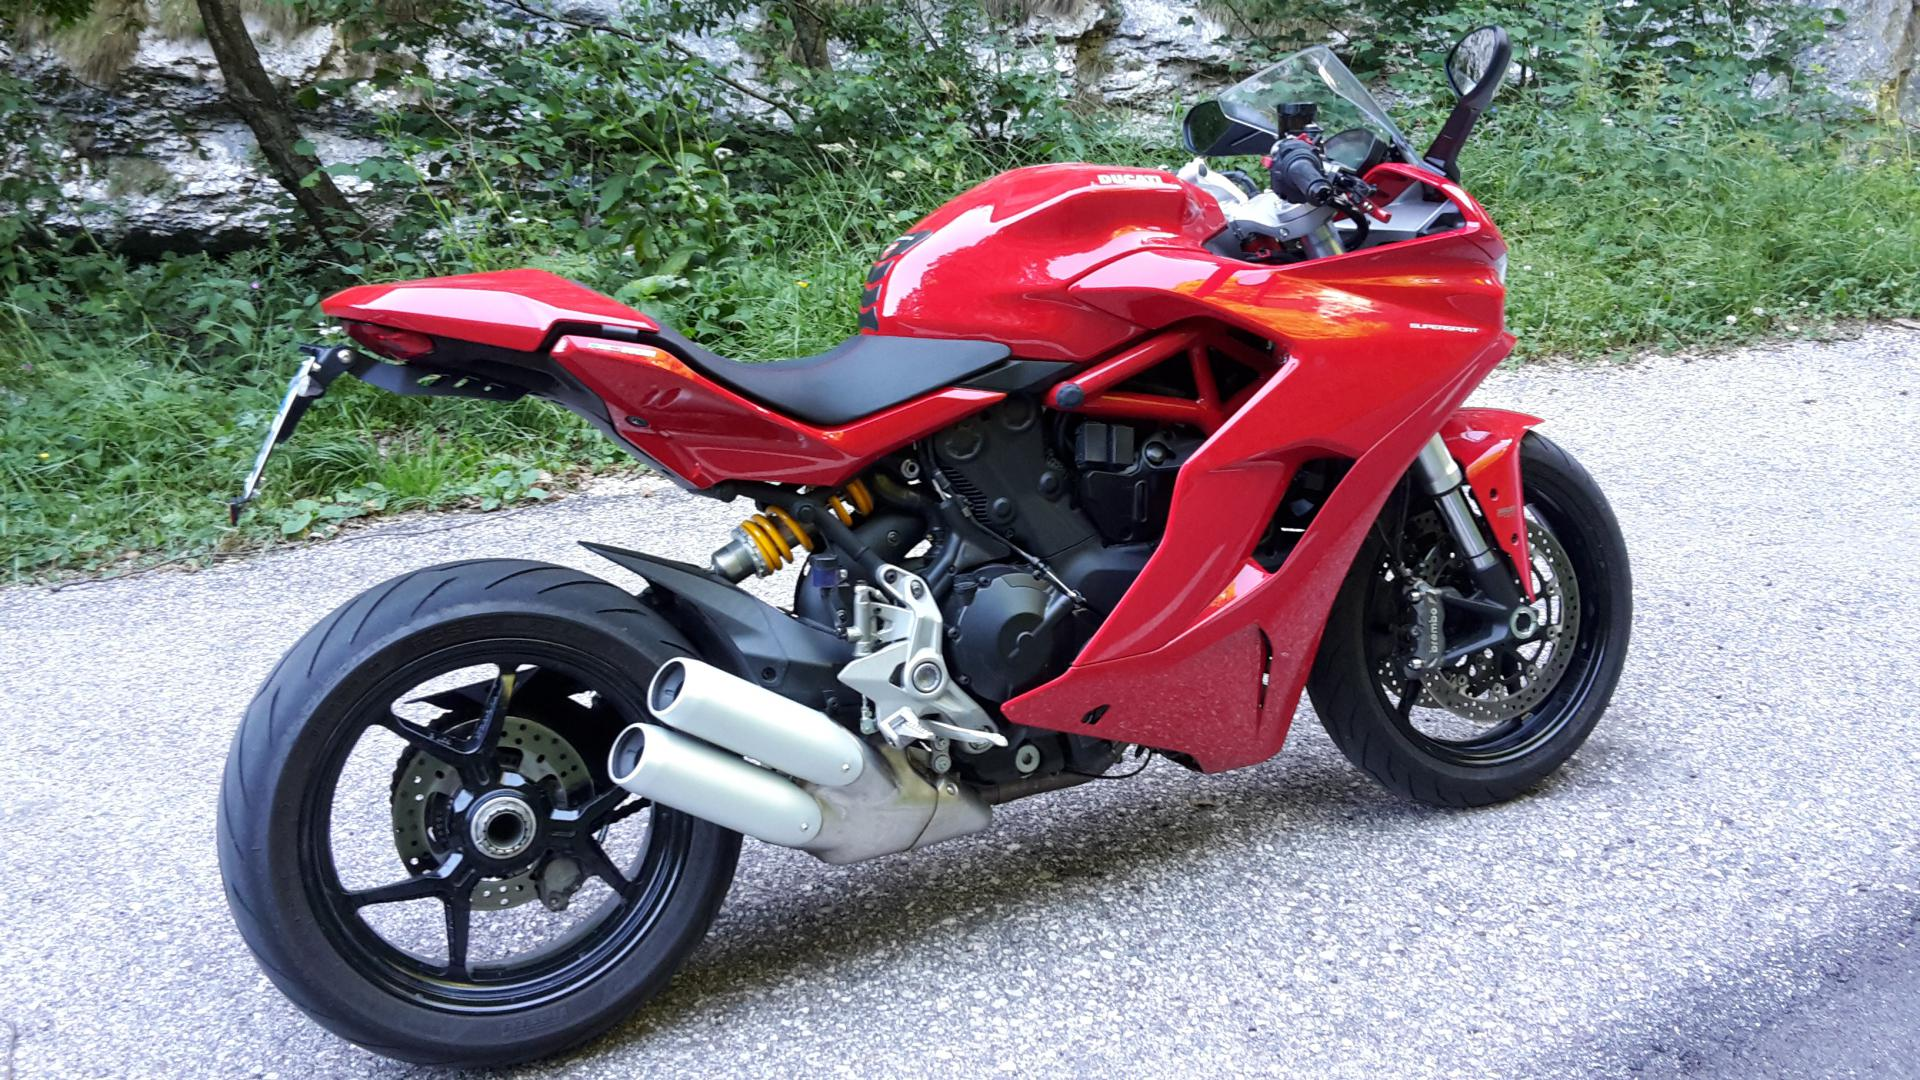 tail tidy - page 11 - ducati supersport 939 forum